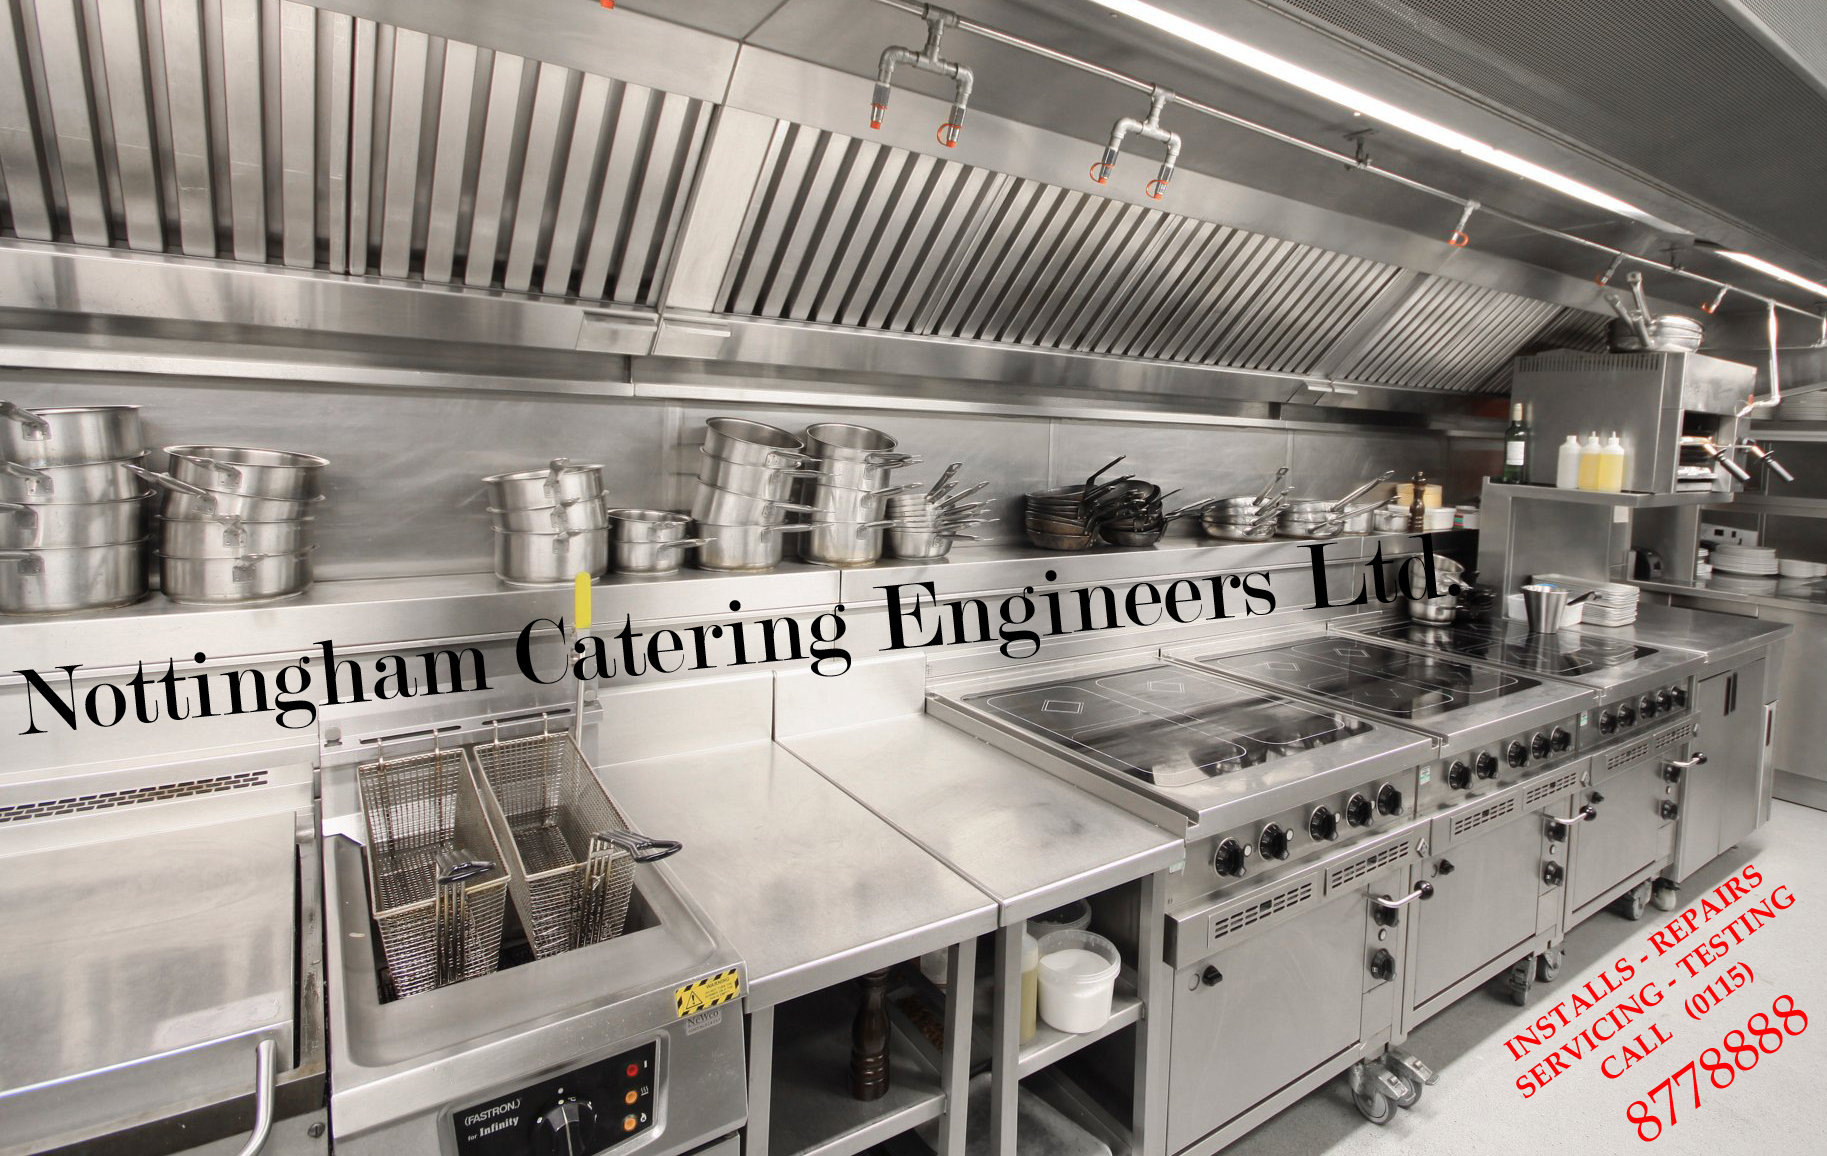 Nottingham Catering Engineers repairs sales install commercial catering equipment